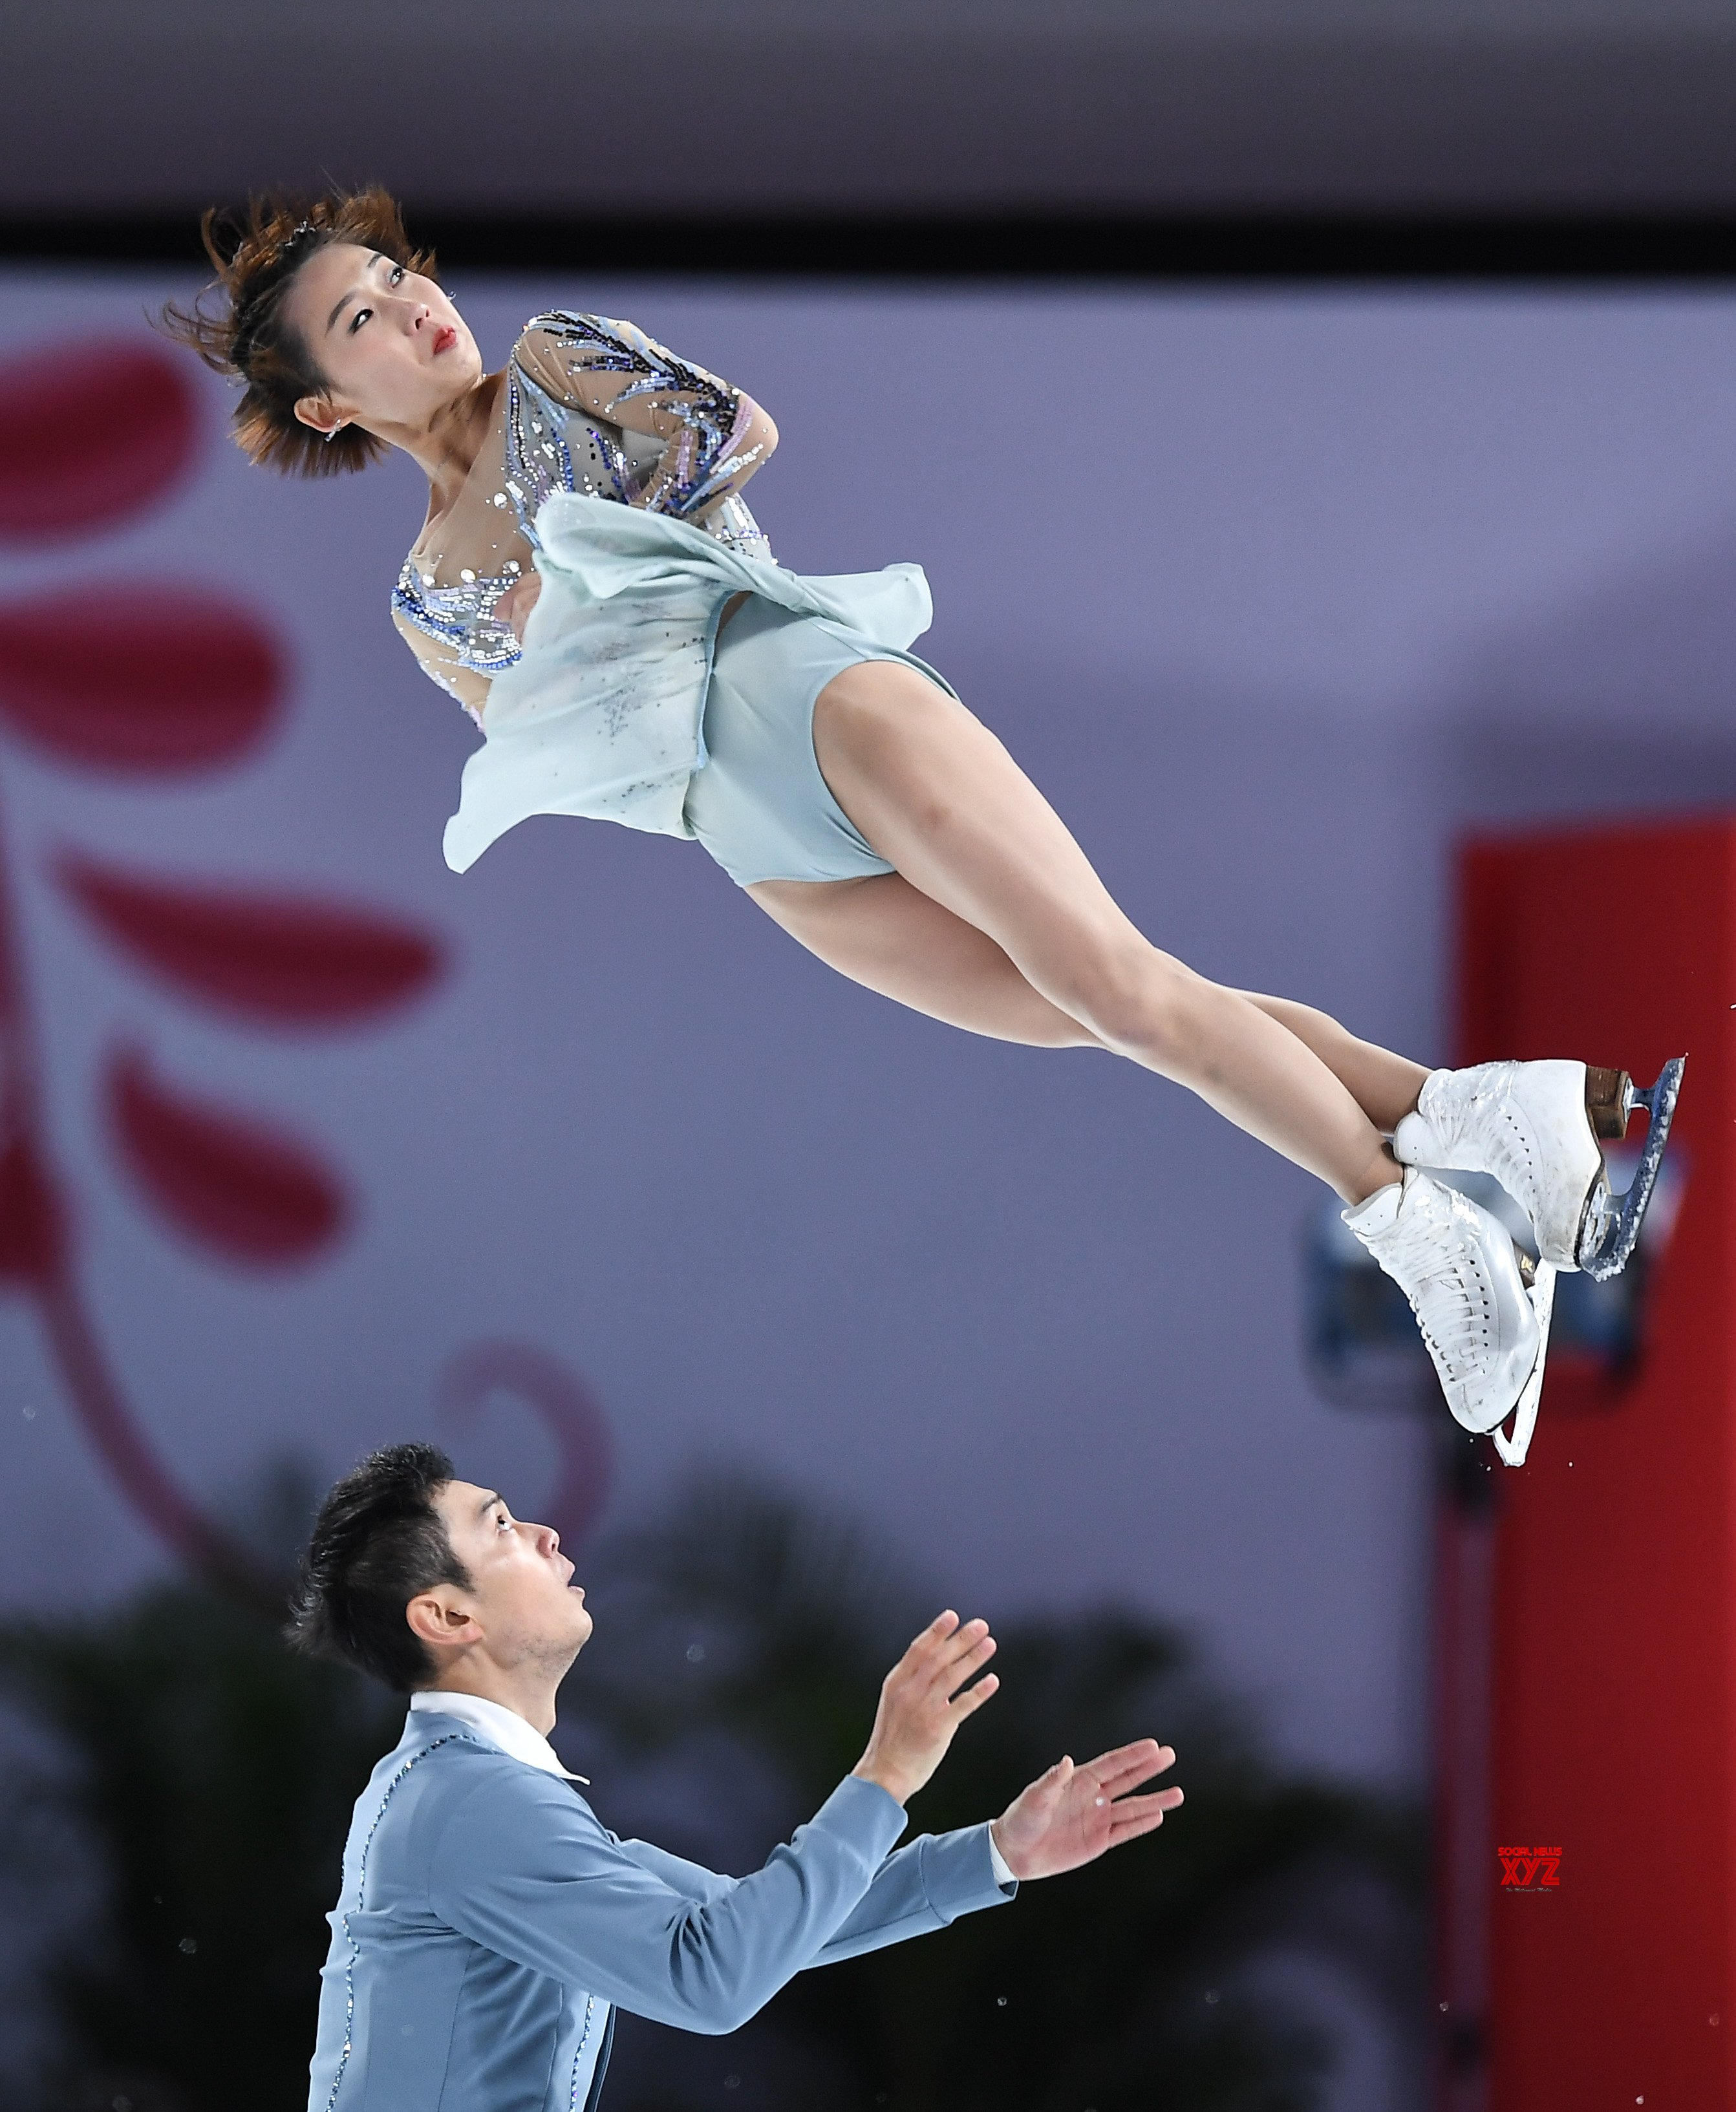 CHINA - CHONGQING - ISU GRAND PRIX OF FIGURE SKATING CUP OF CHINA #Gallery